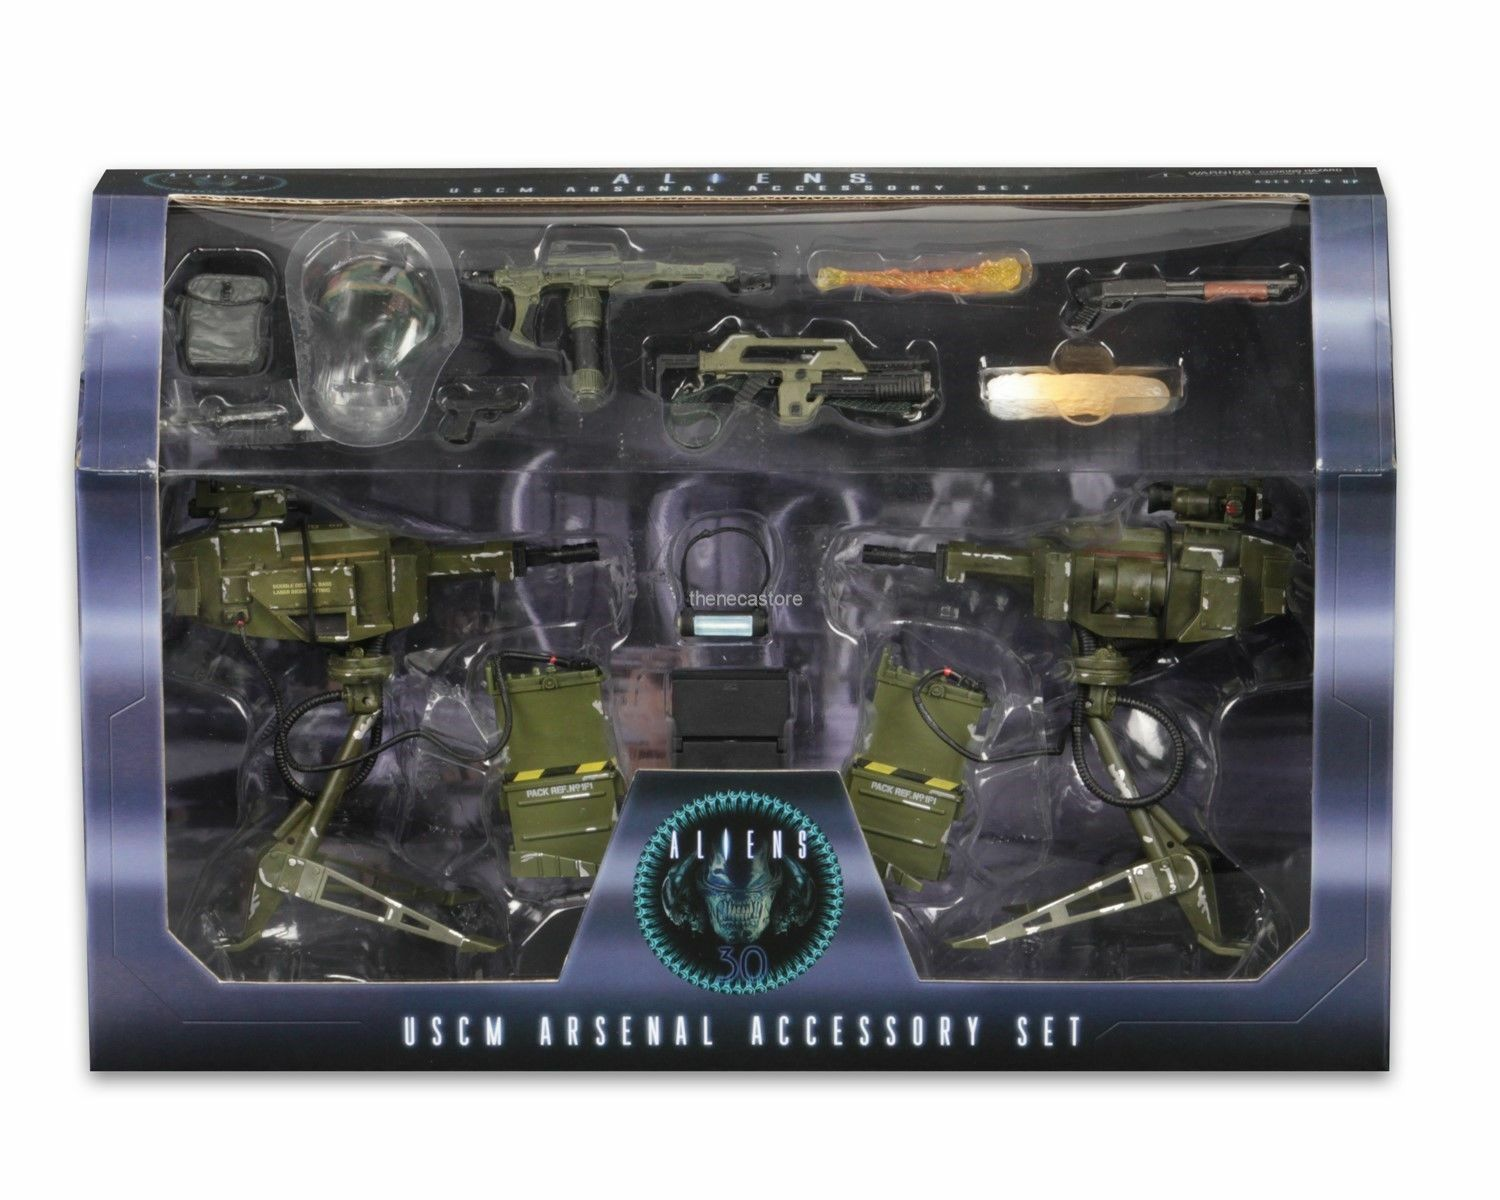 Aliens – USCM Arsenal Accessory Pack For Alien & Prossoators Action Figures NECA